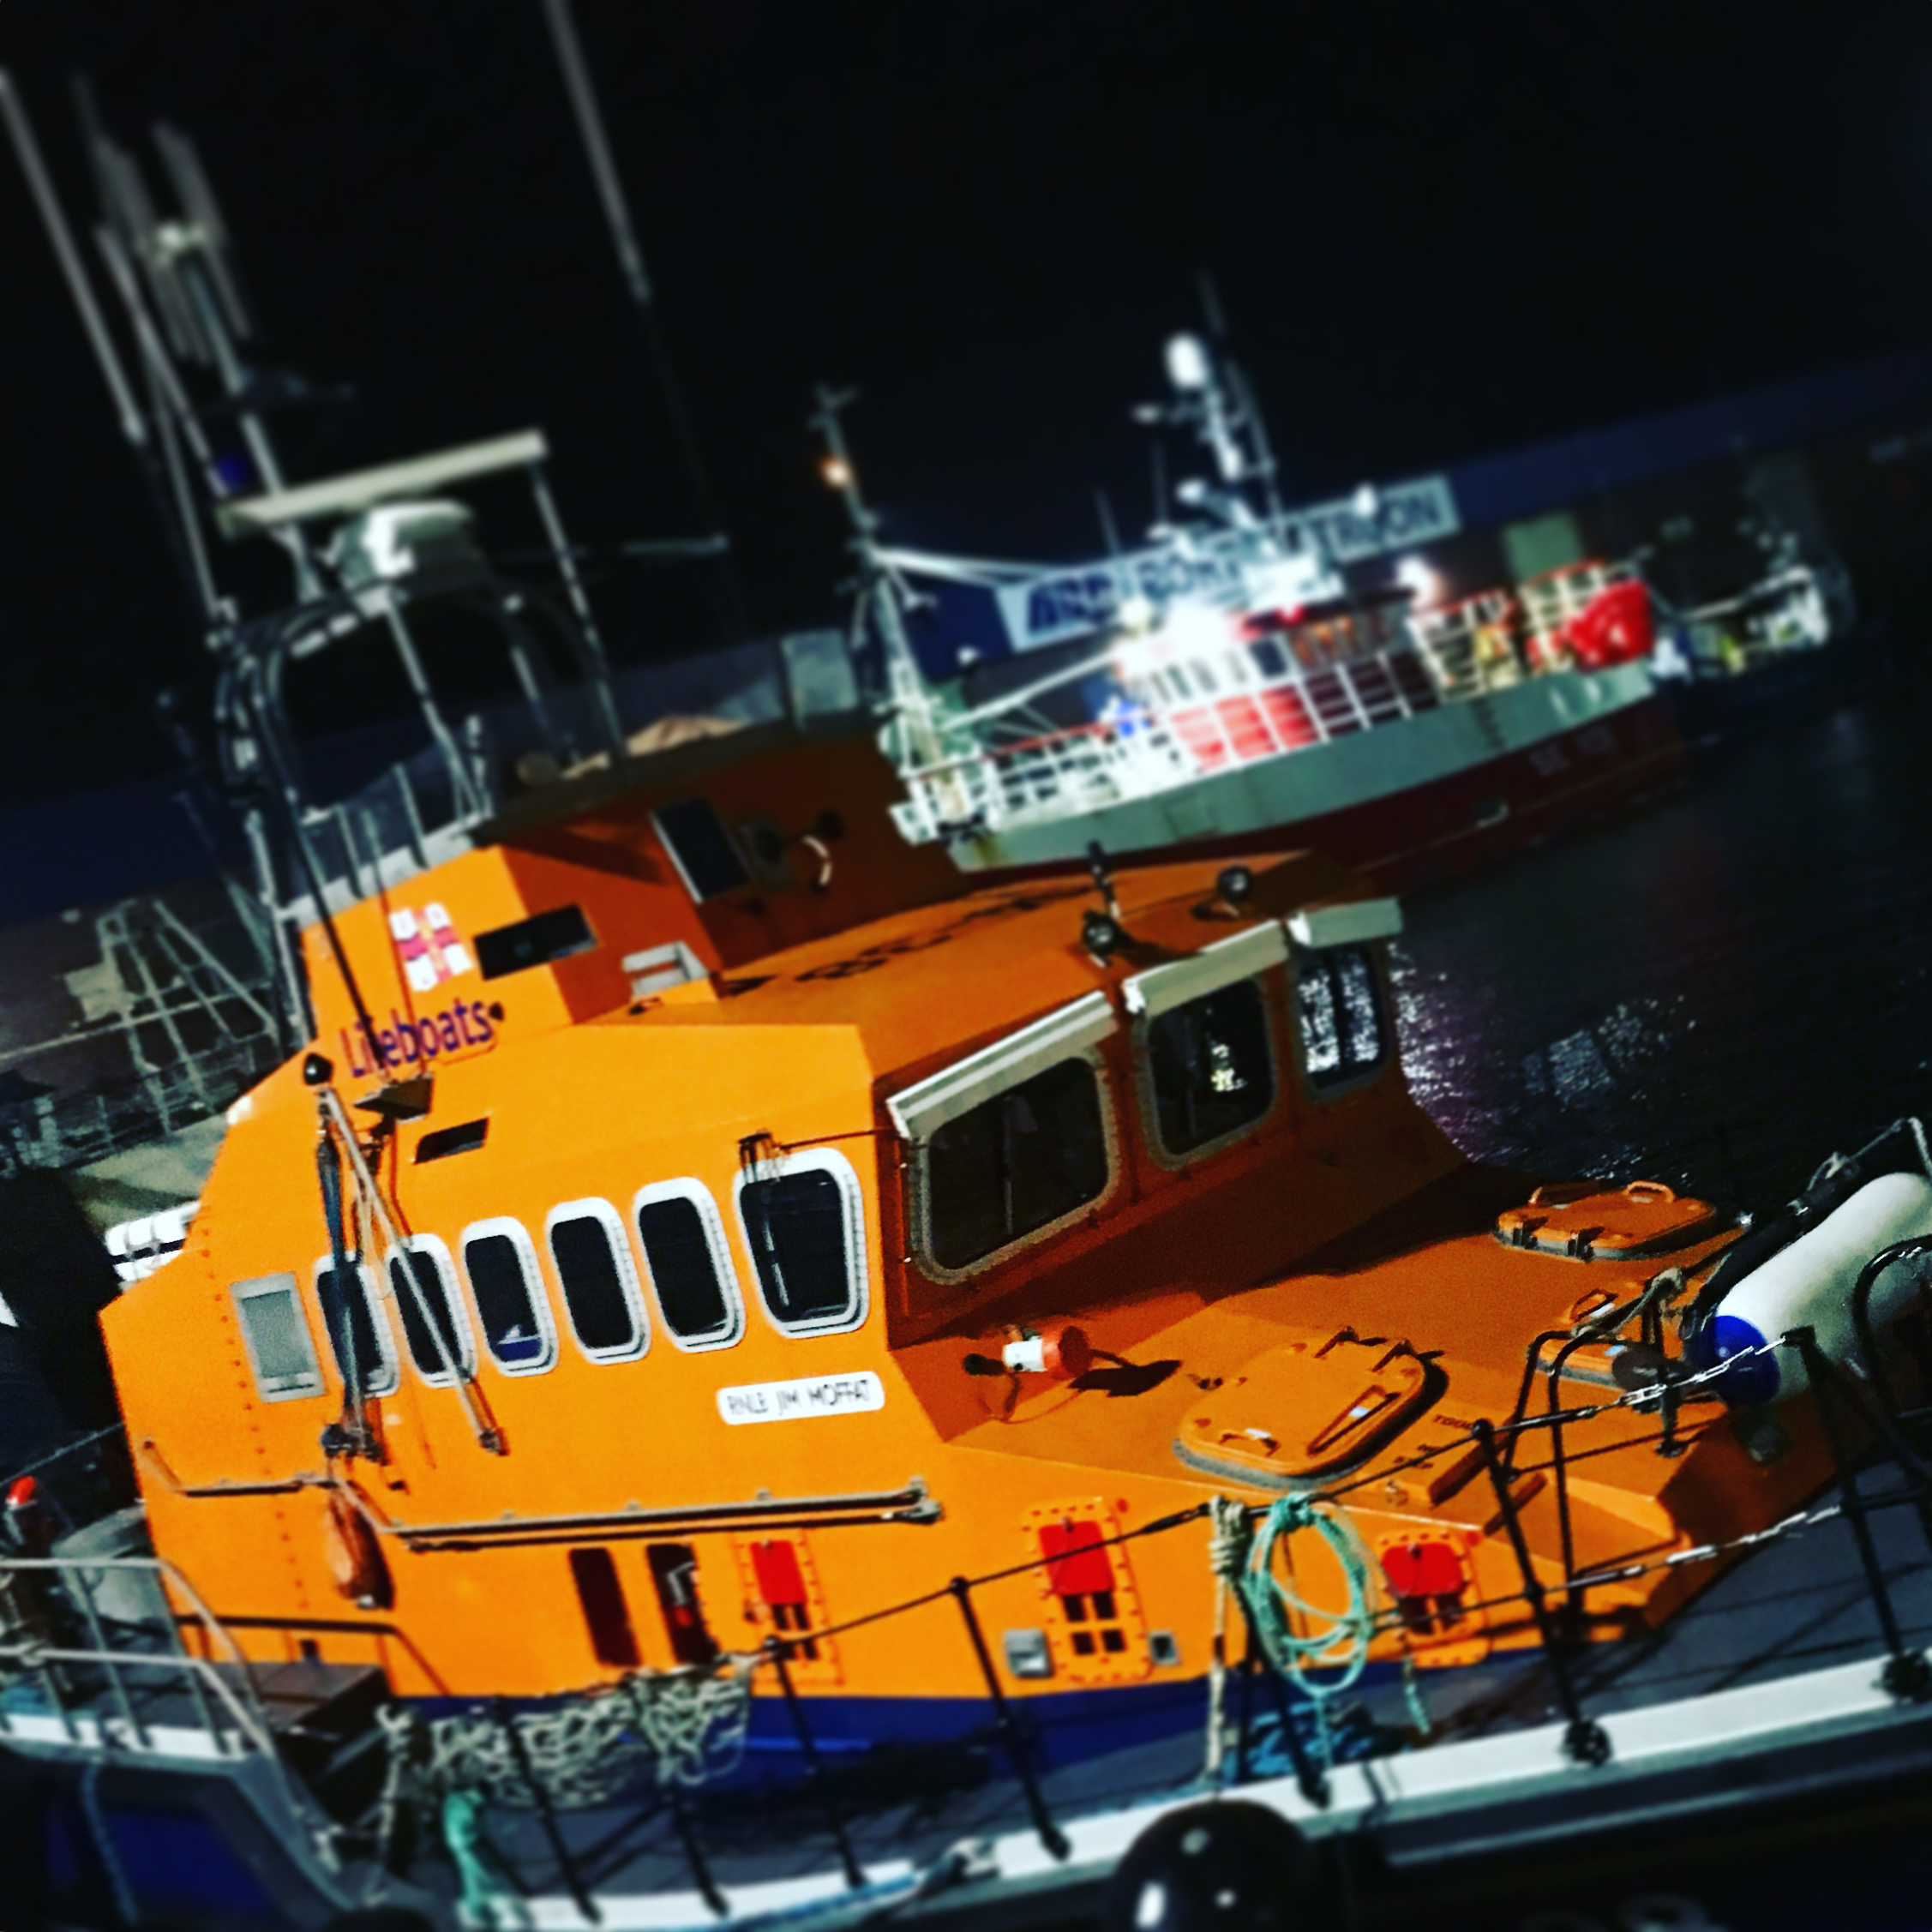 Troon RNLI all-weather lifeboat within Troon harbour